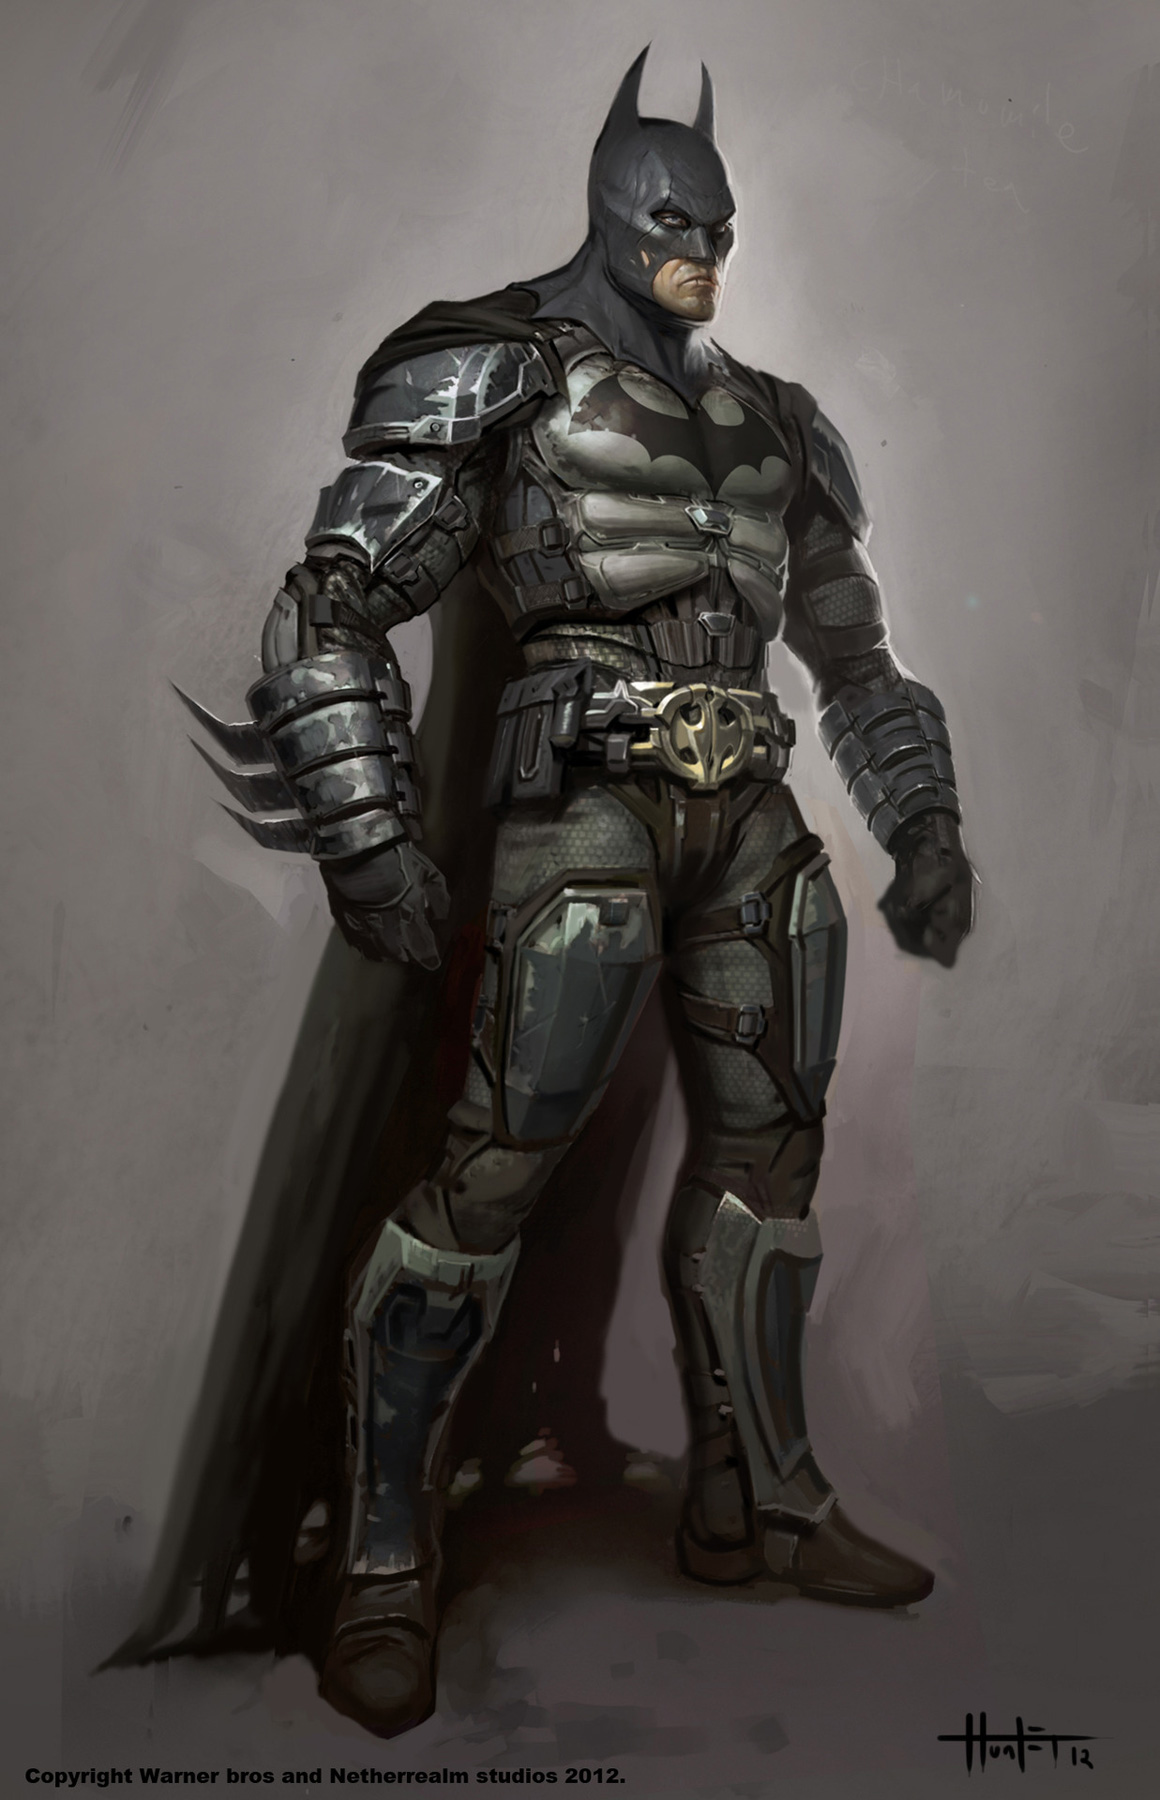 Injustice Gods Among Us Concept Art By Hunter Schulz